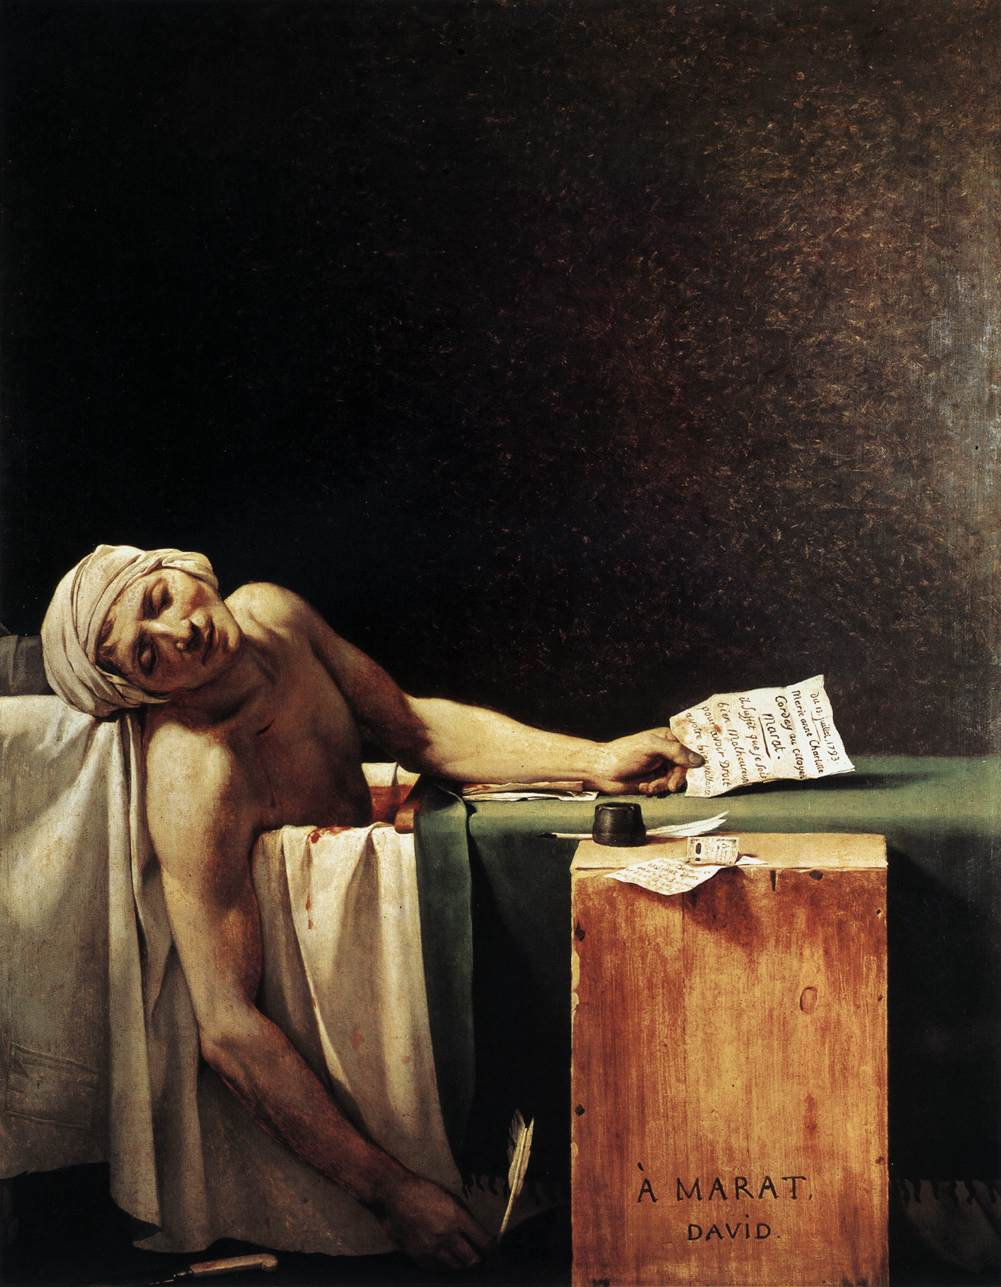 Death of Marat, by David